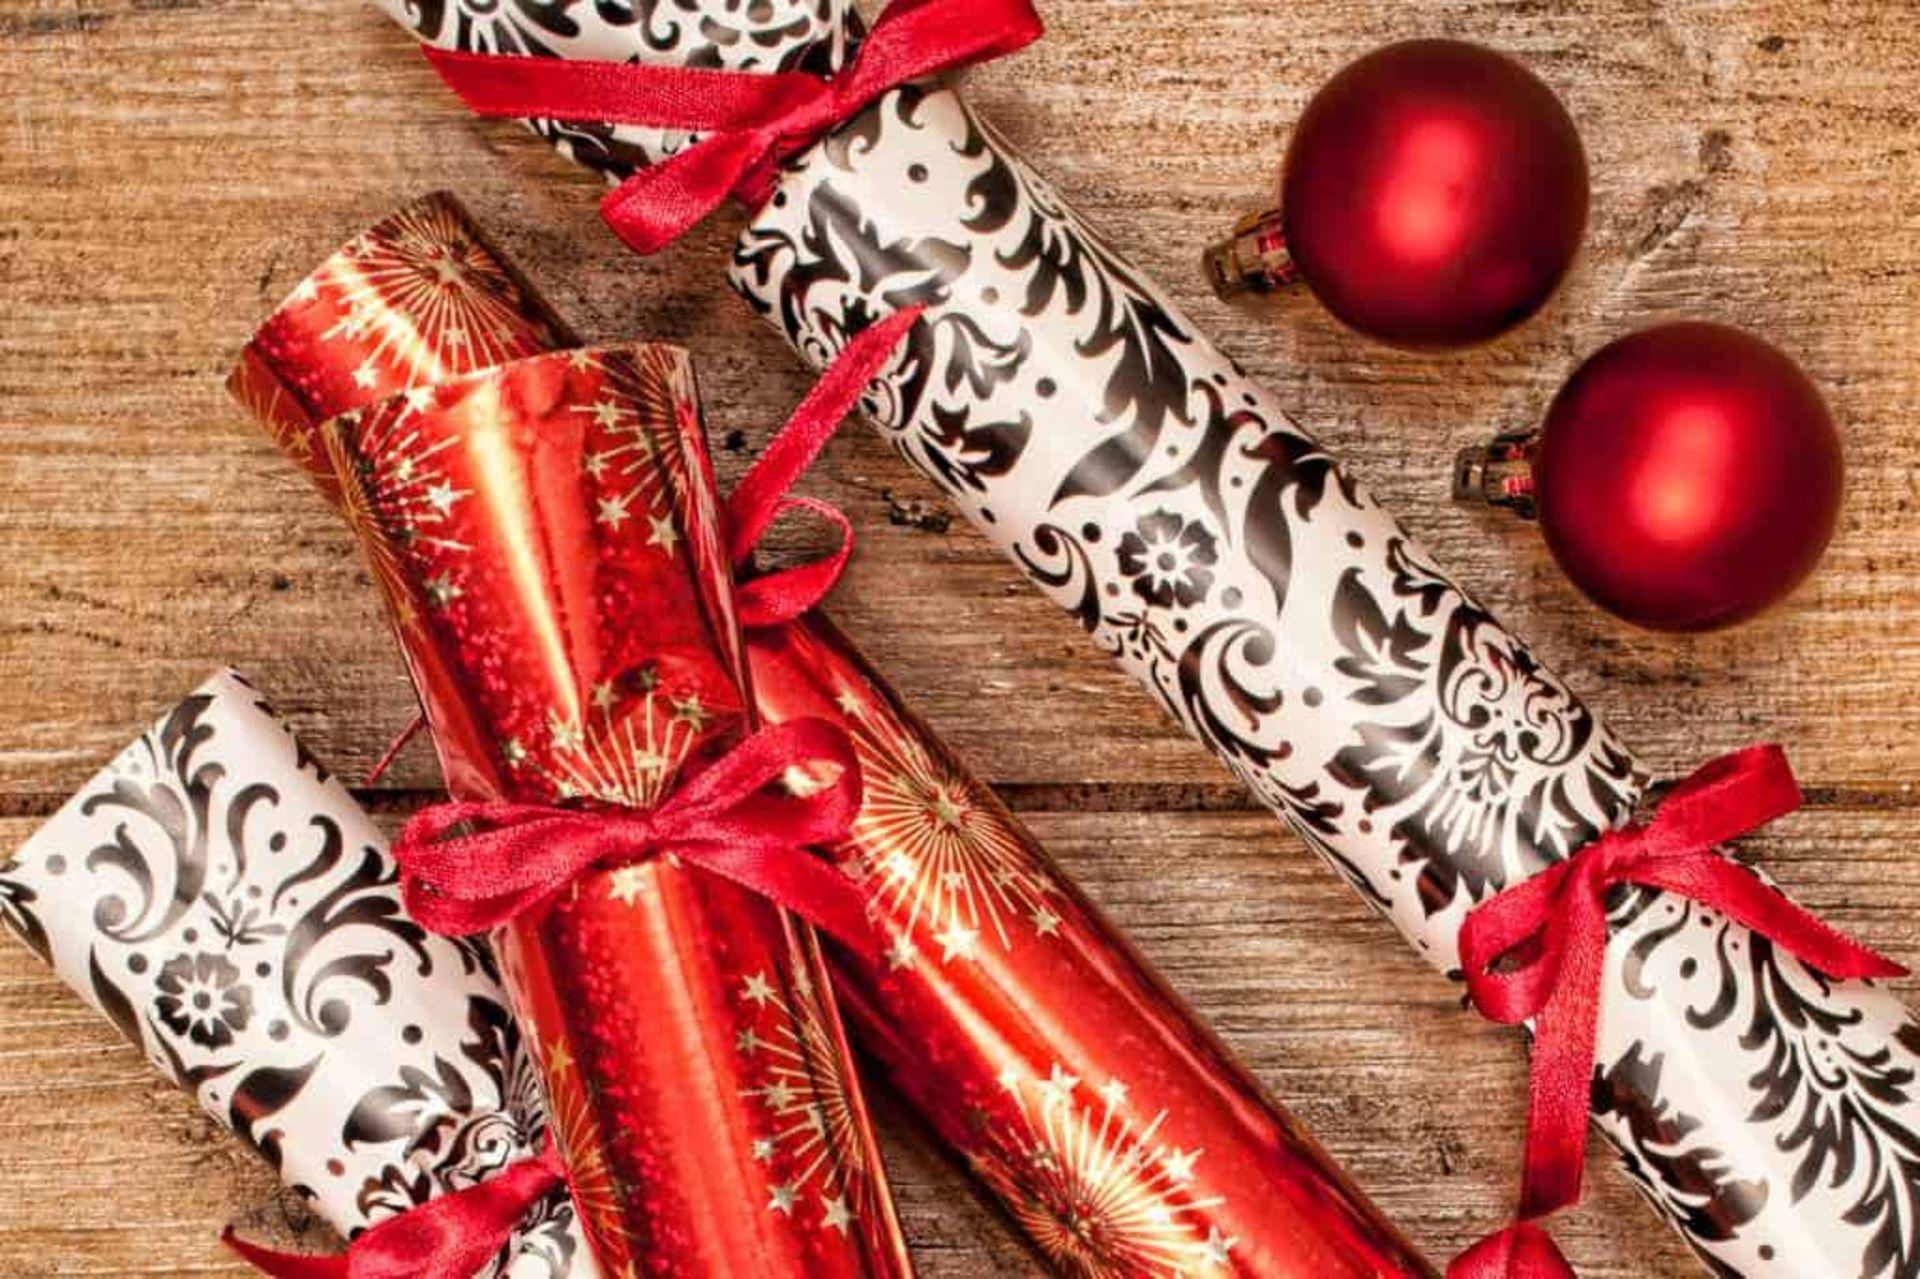 Lot 18169 - V Brand New Box of 12 Deluxe Christmas Crackers - Box of 12 - Red Design